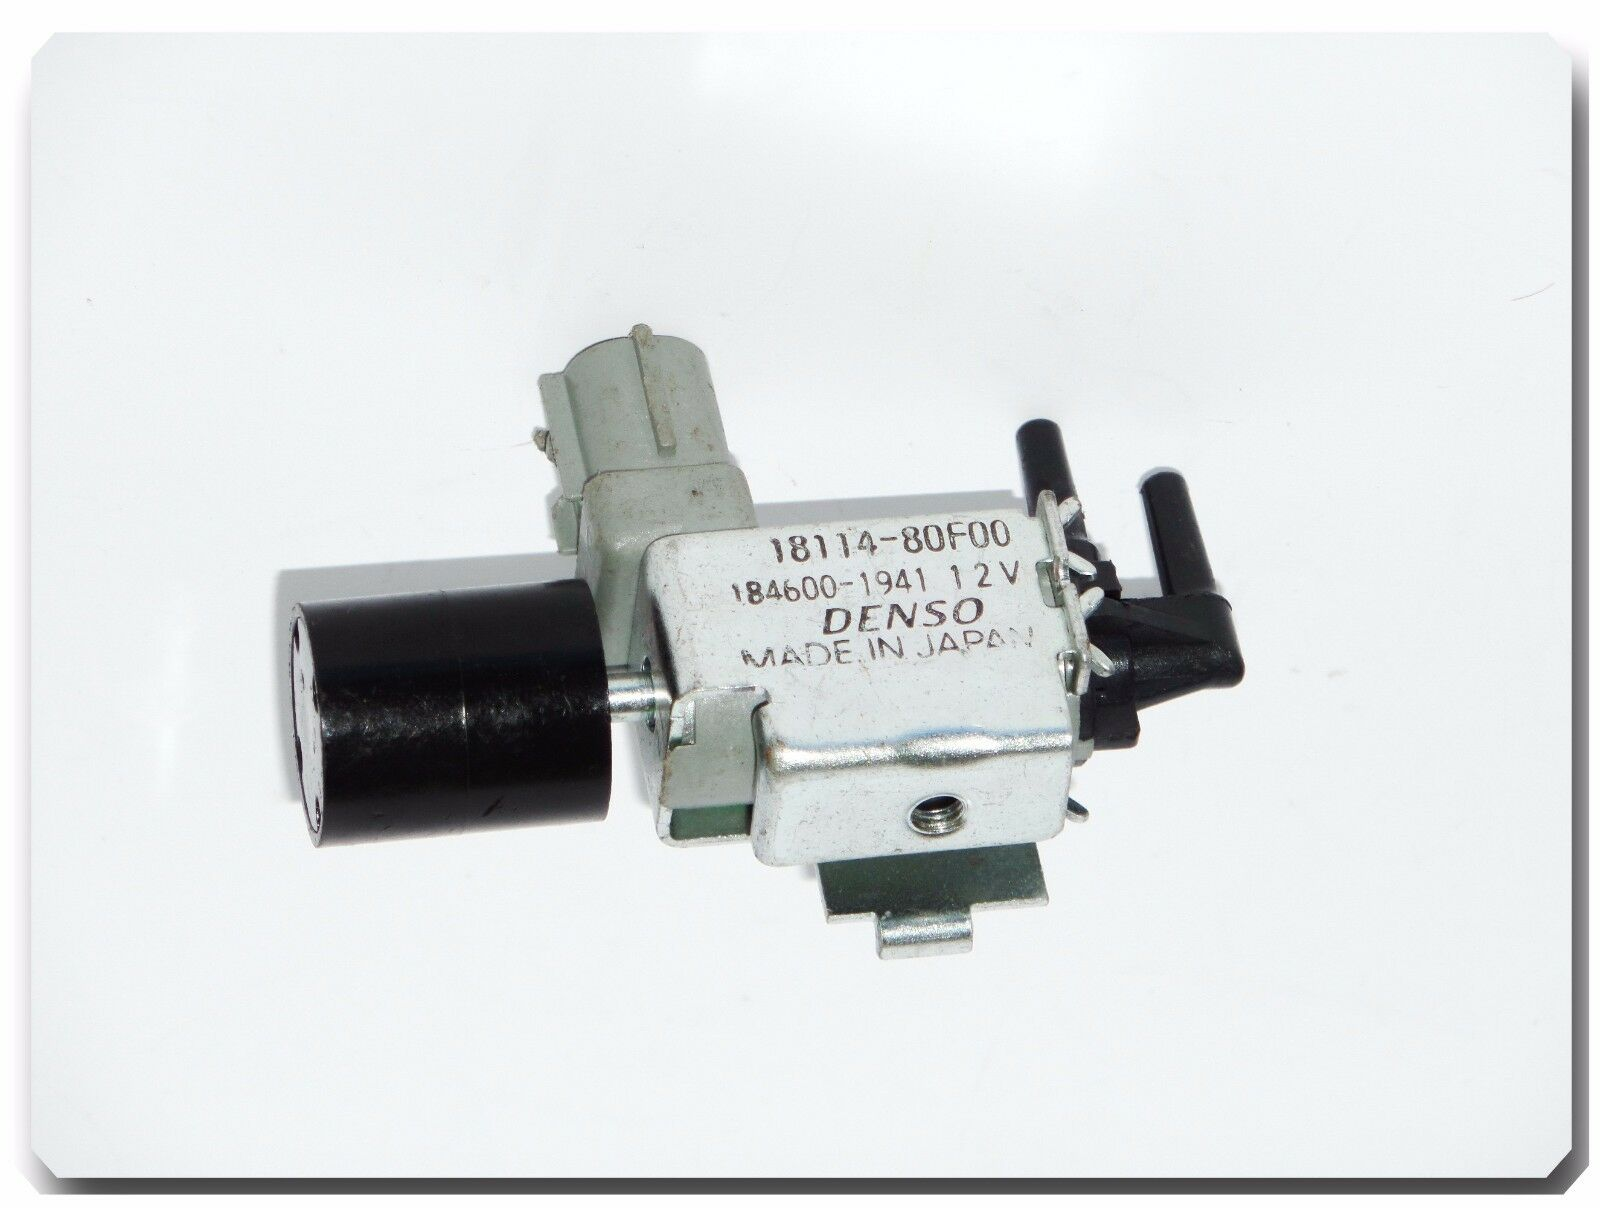 Egr Valve Control Switch Vacuum Solenoid Fits Tracker 96 97 1992 Toyota 4runner 1 Of 4only 5 Available